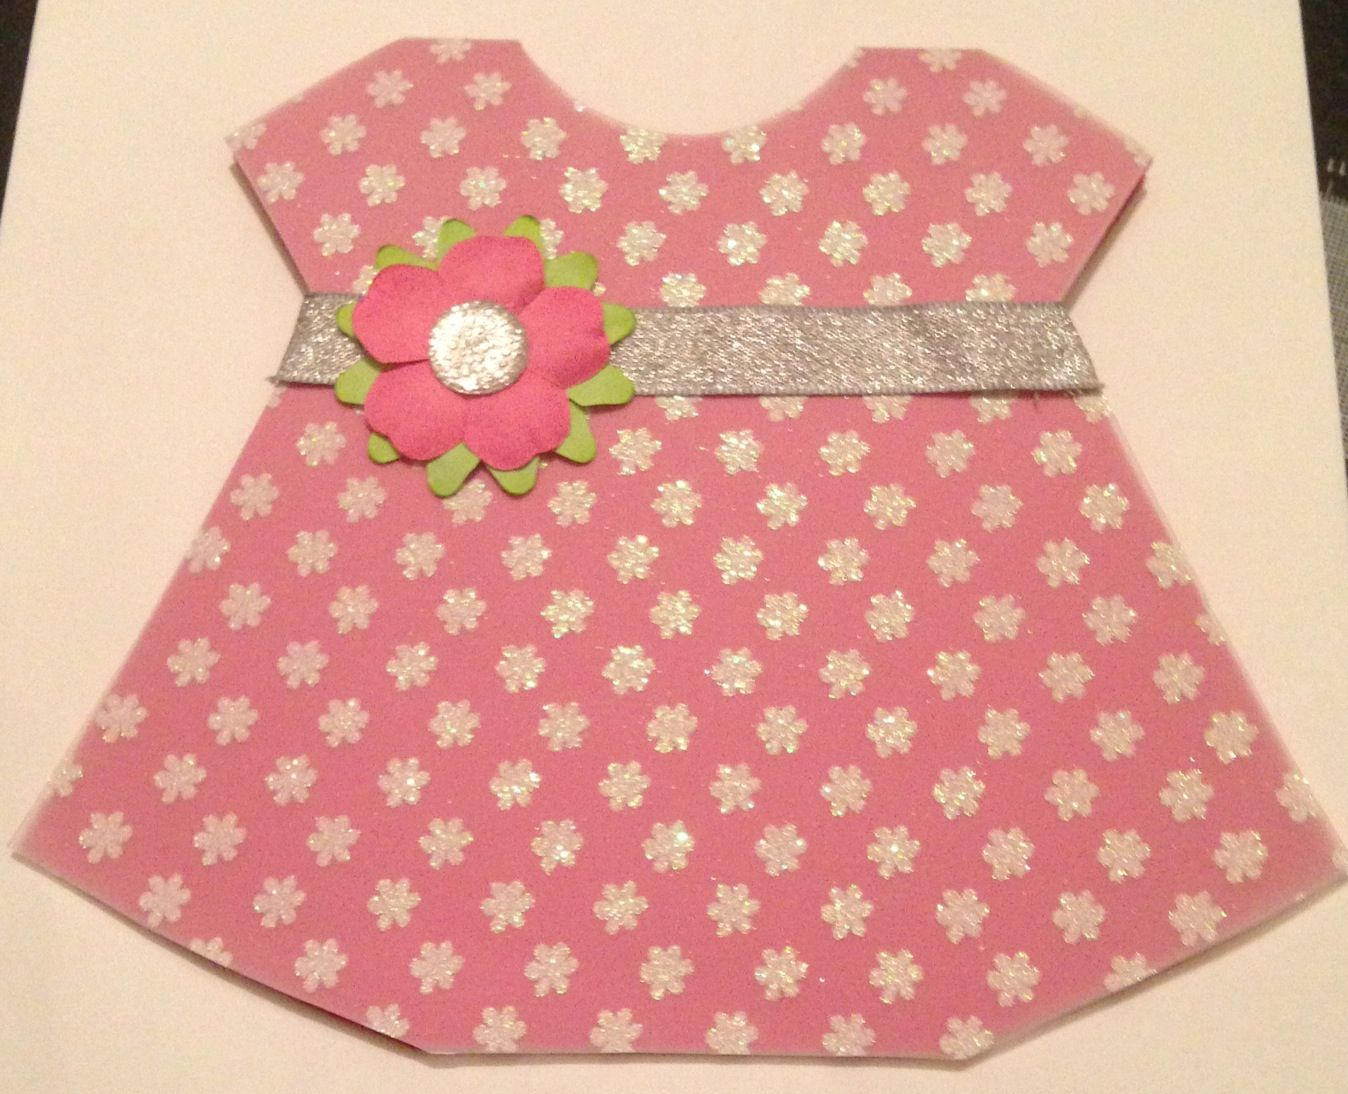 Handmade dress card by AnnMade (front view)